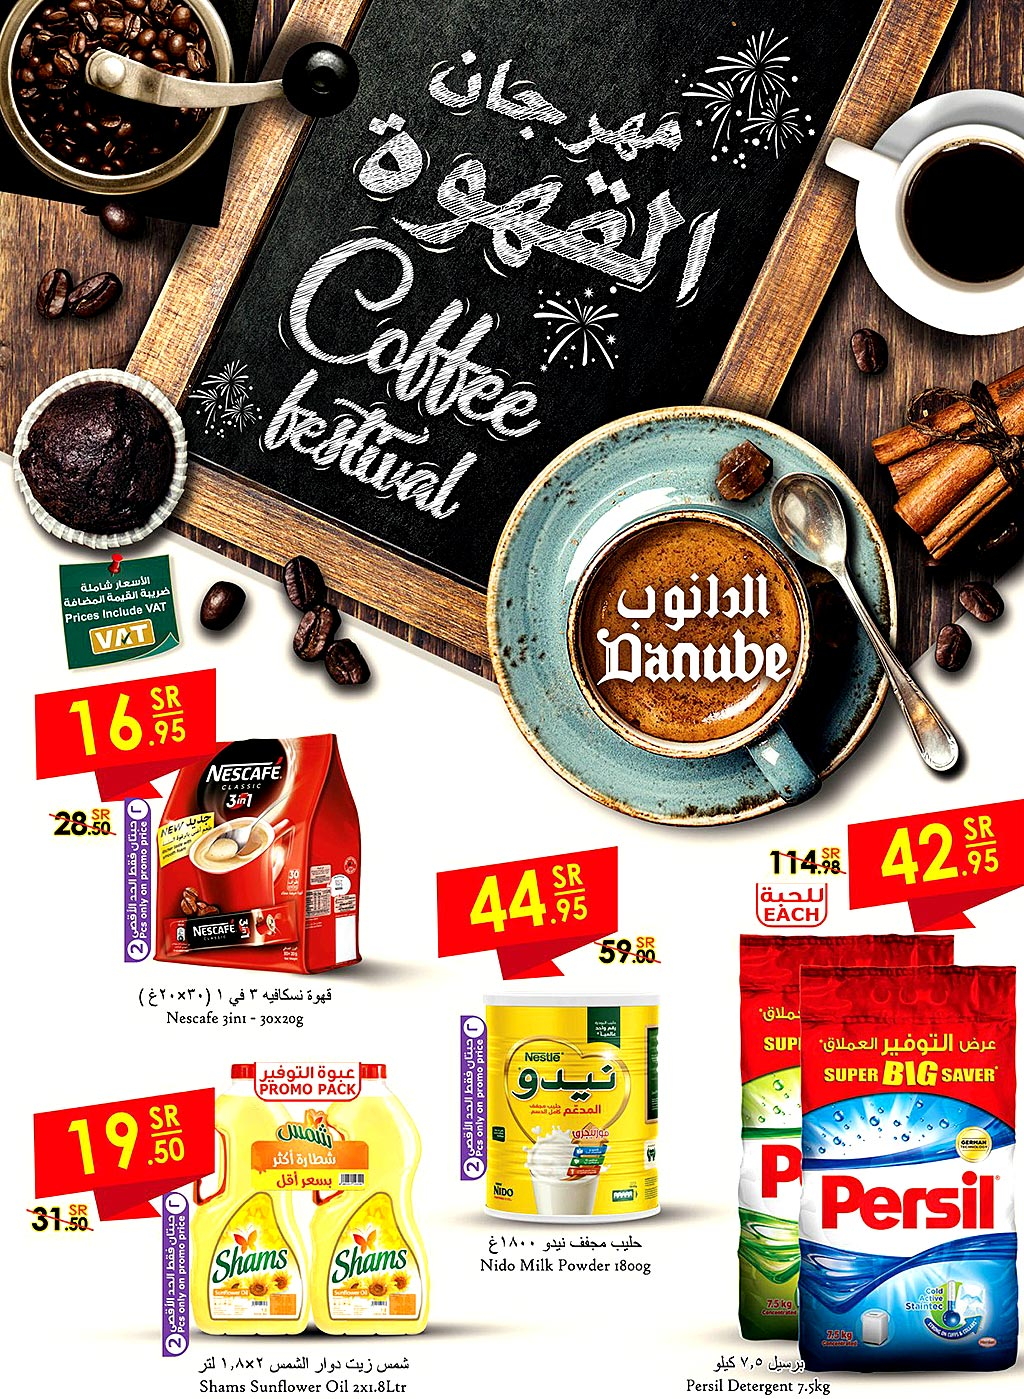 danube offers from 6feb to 14feb 2019 page number 1 عروض الدانوب من 6 فبراير حتى 14 فبراير 2019 صفحة رقم 1